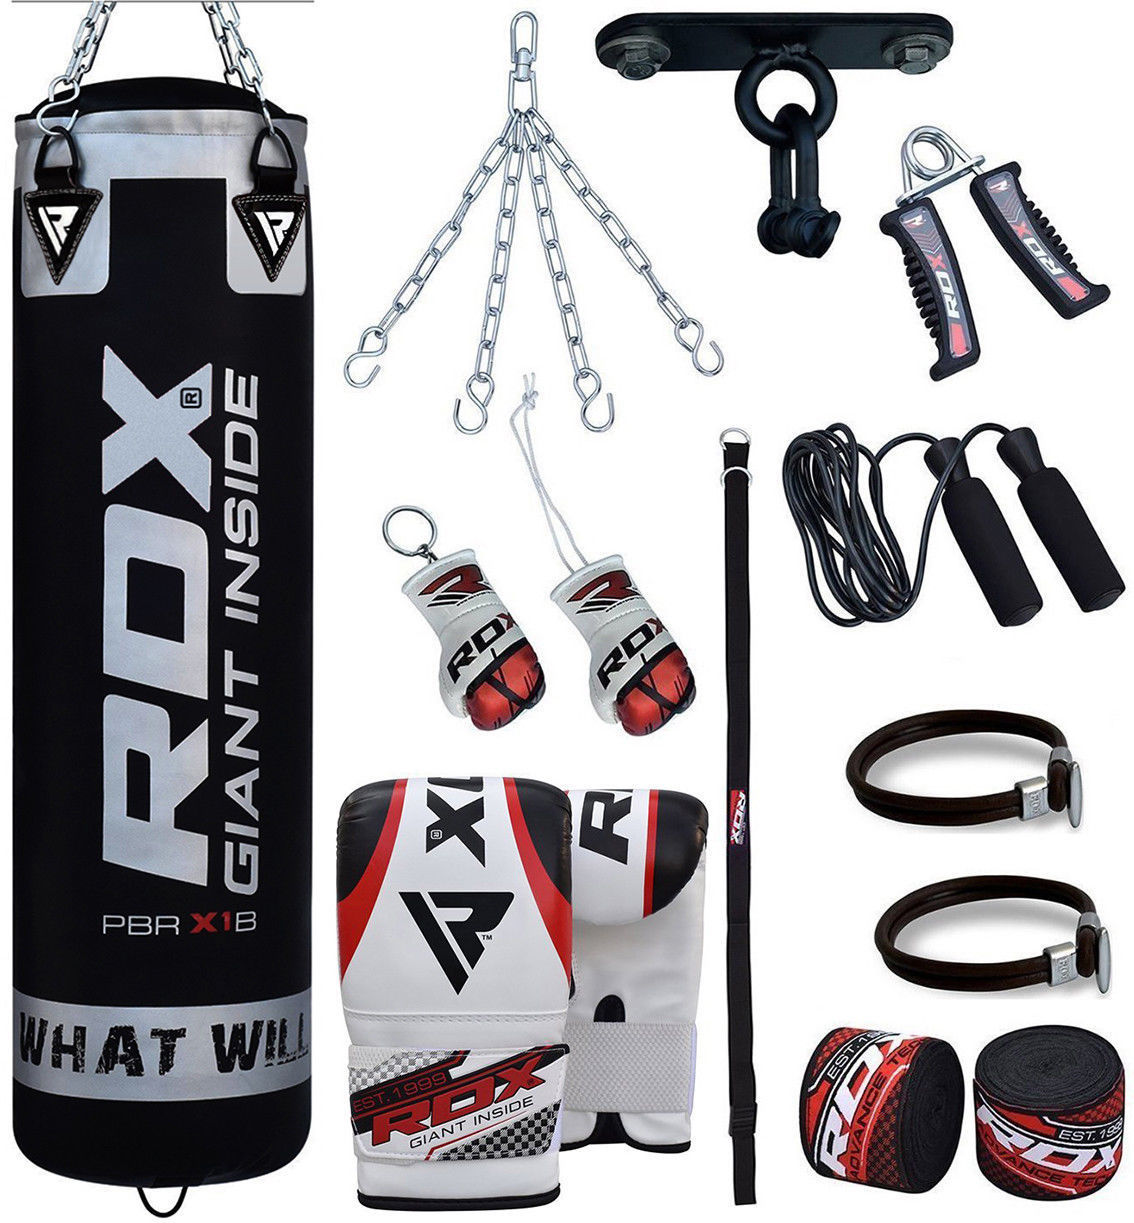 RDX Black X1B Punching Bag 13PC Boxing Set With gloves Ceiling Hook Wraps Chain